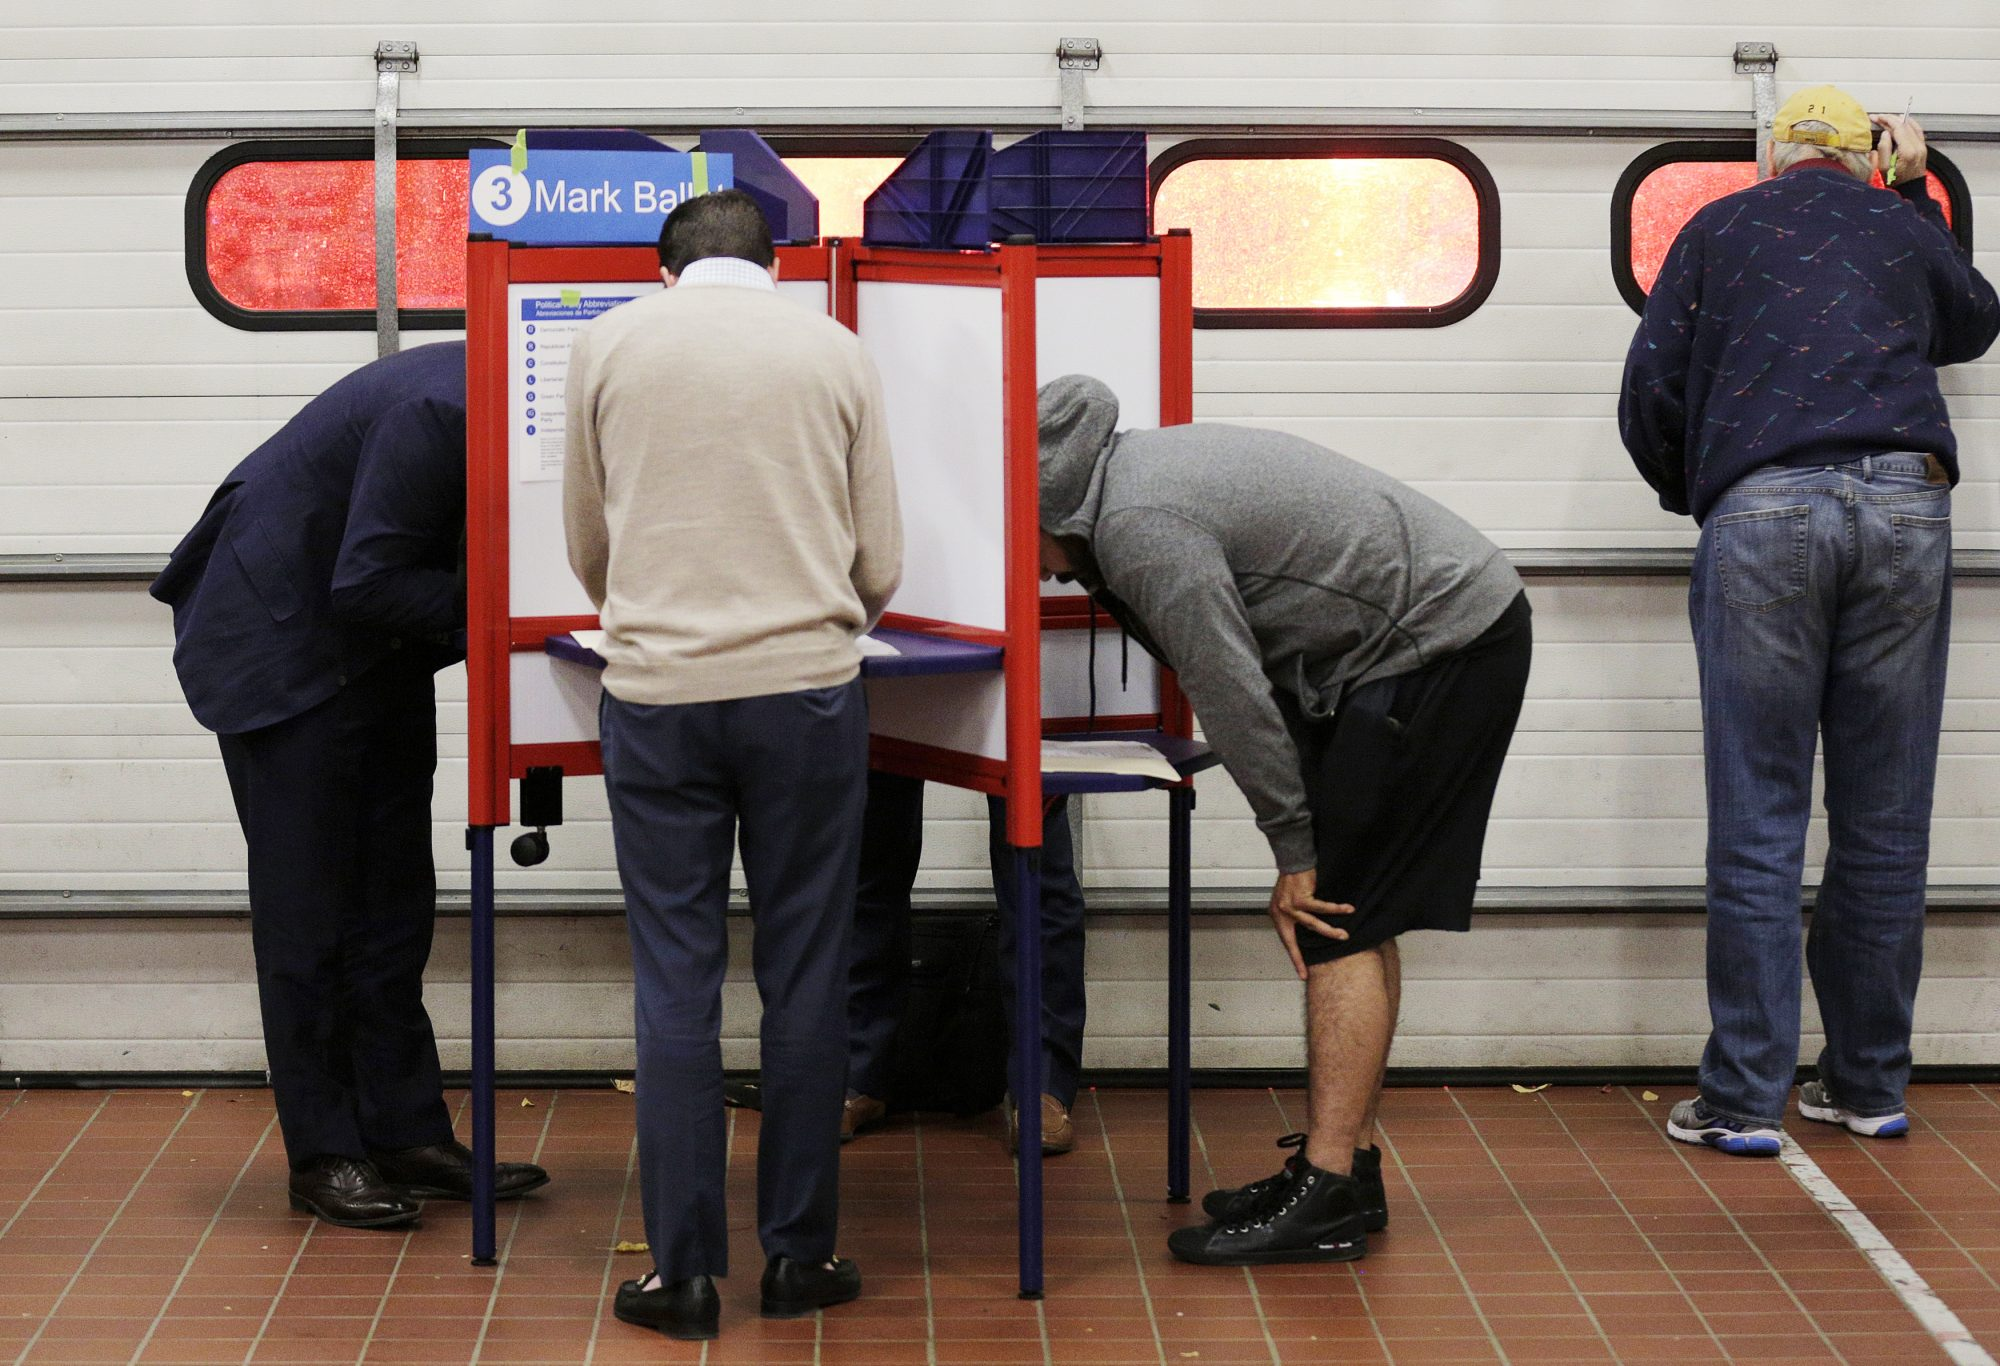 Voters look over their ballots at a fire station while a crew leaves on an emergency call during the U.S. presidential election in Arlington